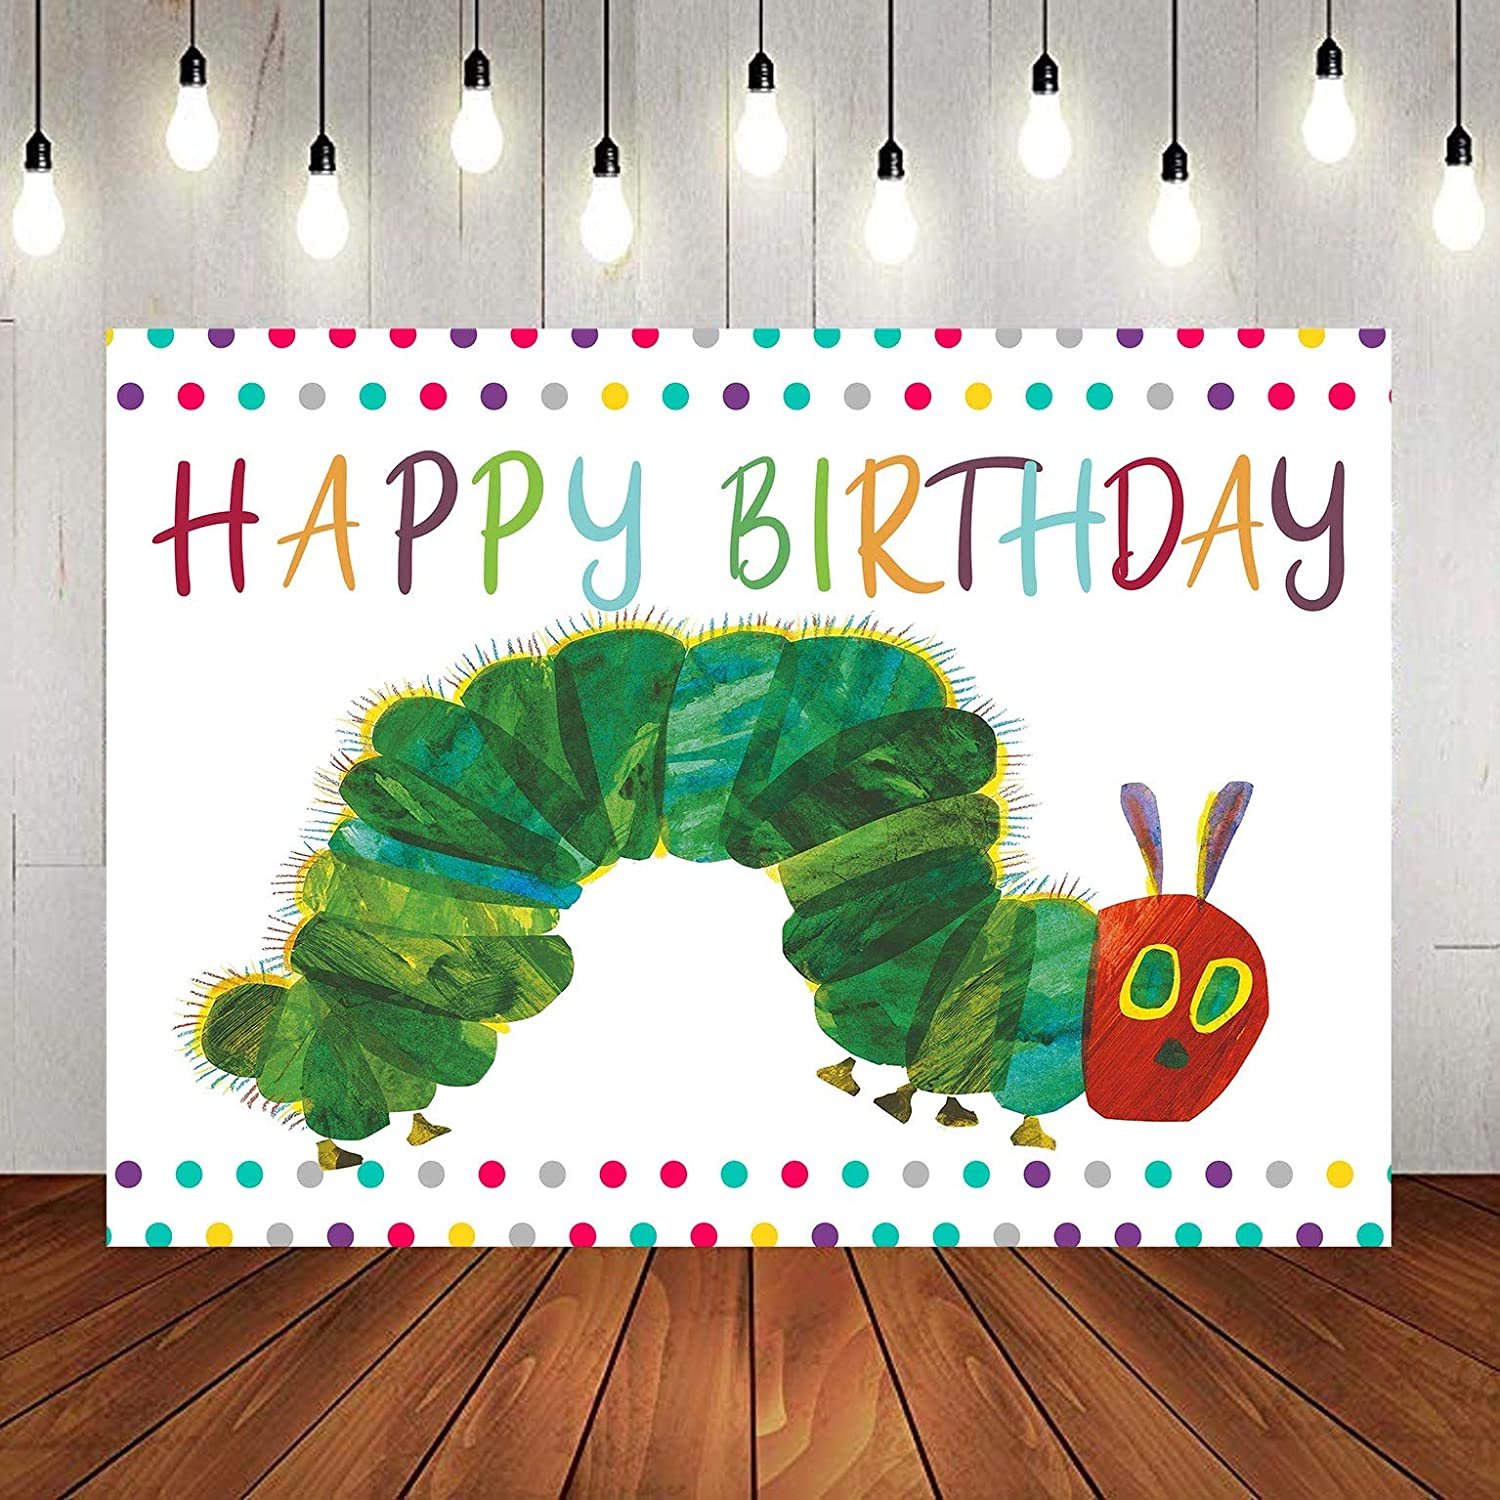 Happy Birthday Photography Backdrop for Caterpillar Theme Party, 9x6FT, Rainbow Color Insect Cartoon Kids Boy Girl Cake Table Banner Background, Photo Booth Studio Props LYLU983